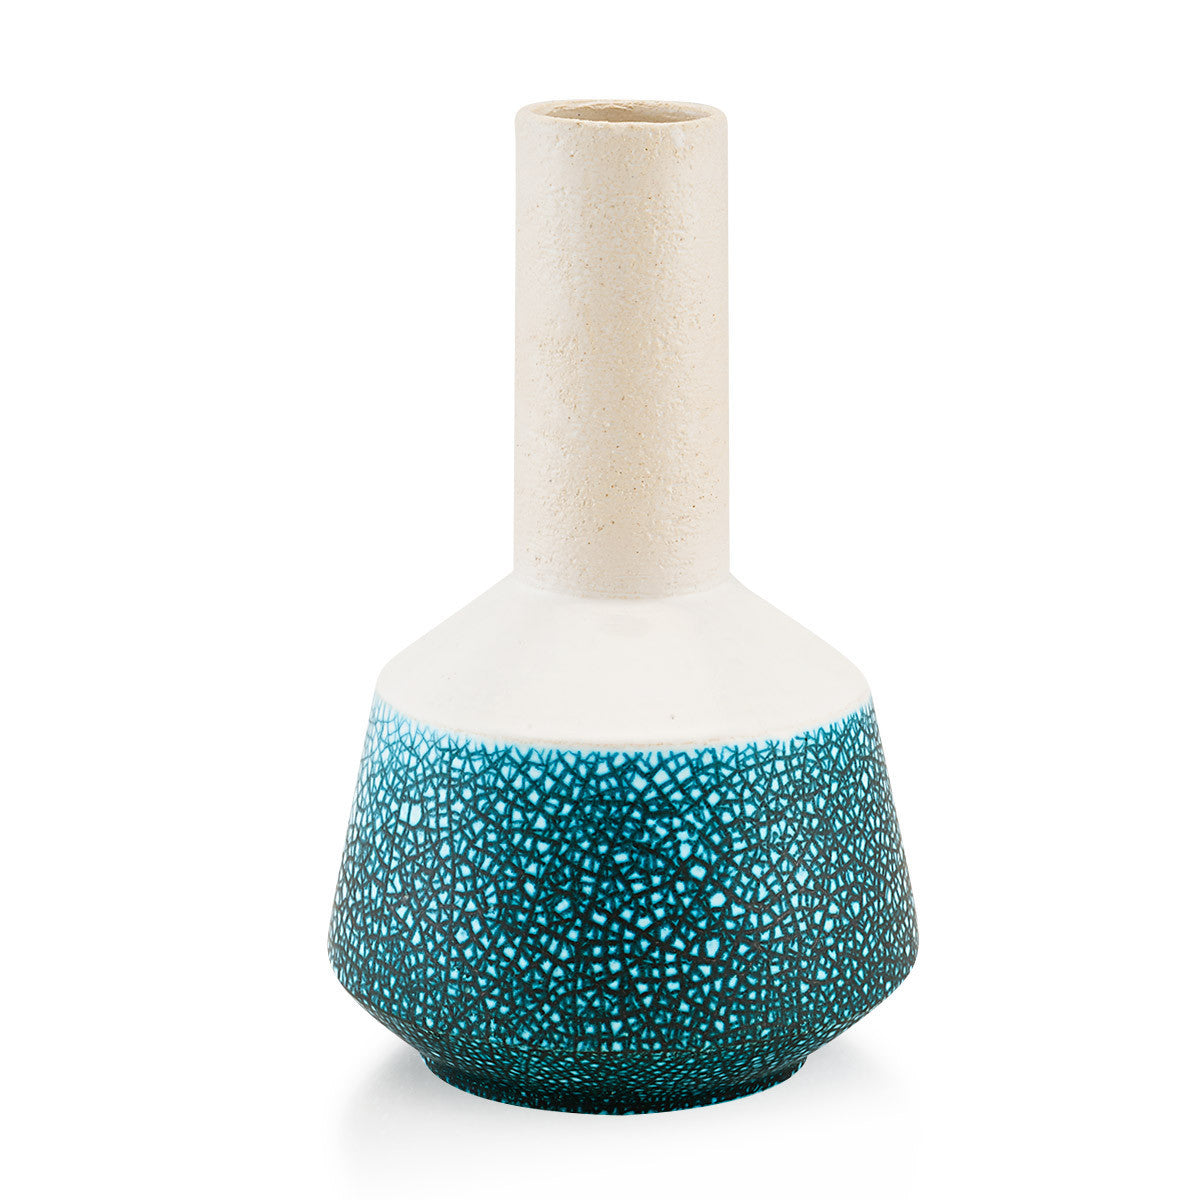 Vaso design moderno in ceramica crackle oceano